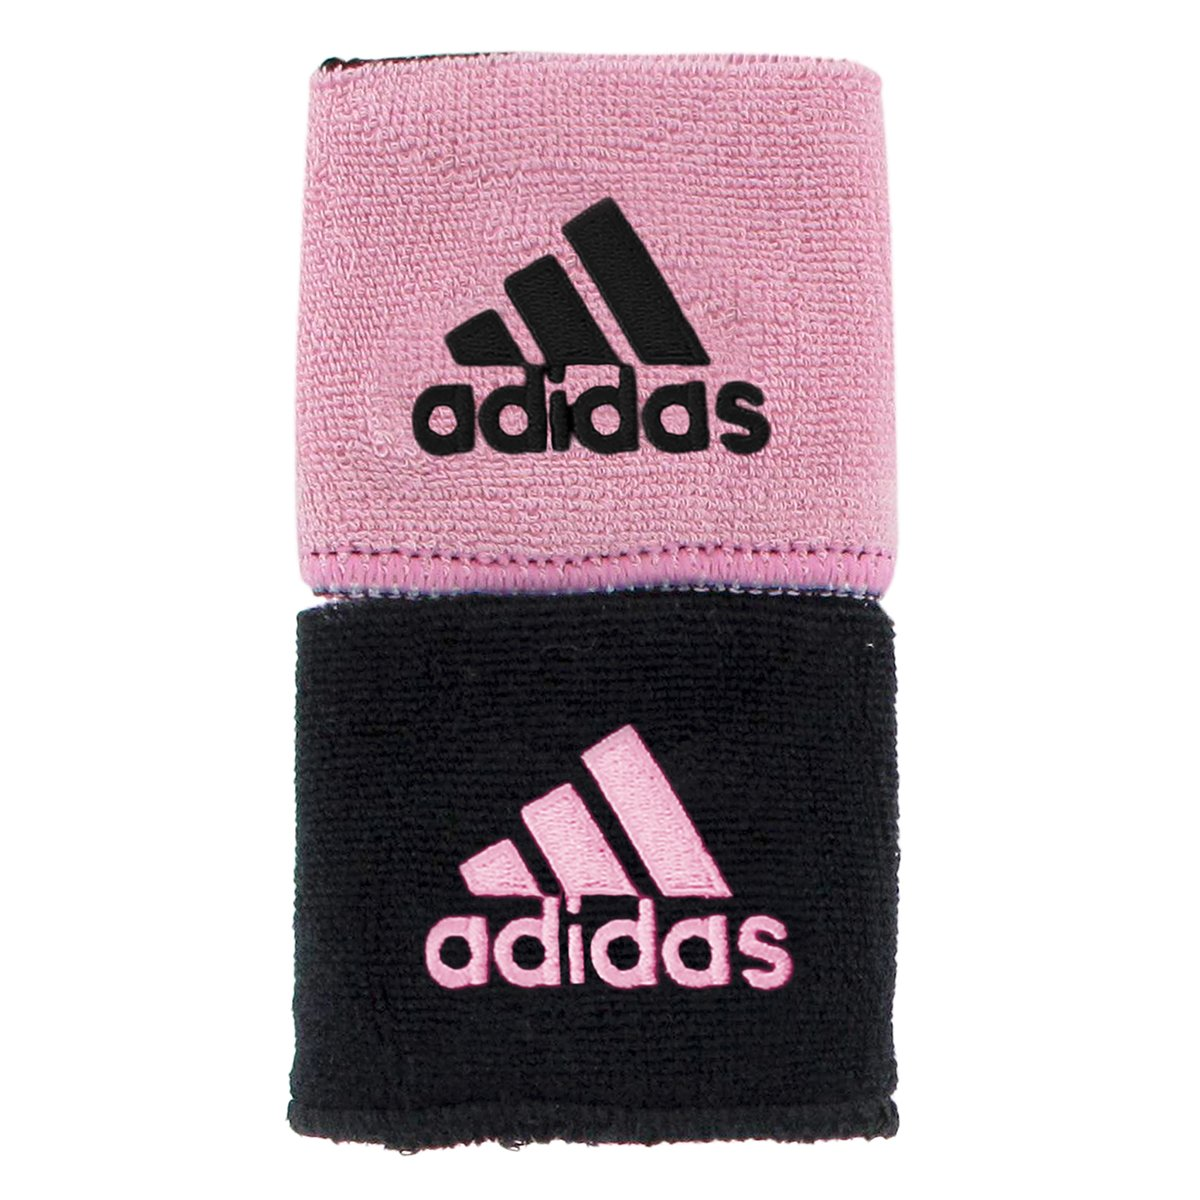 adidas Interval Reversible Wristband, Black/Gala Pink / Gala Pink/Black, One Size Fits All by adidas (Image #1)